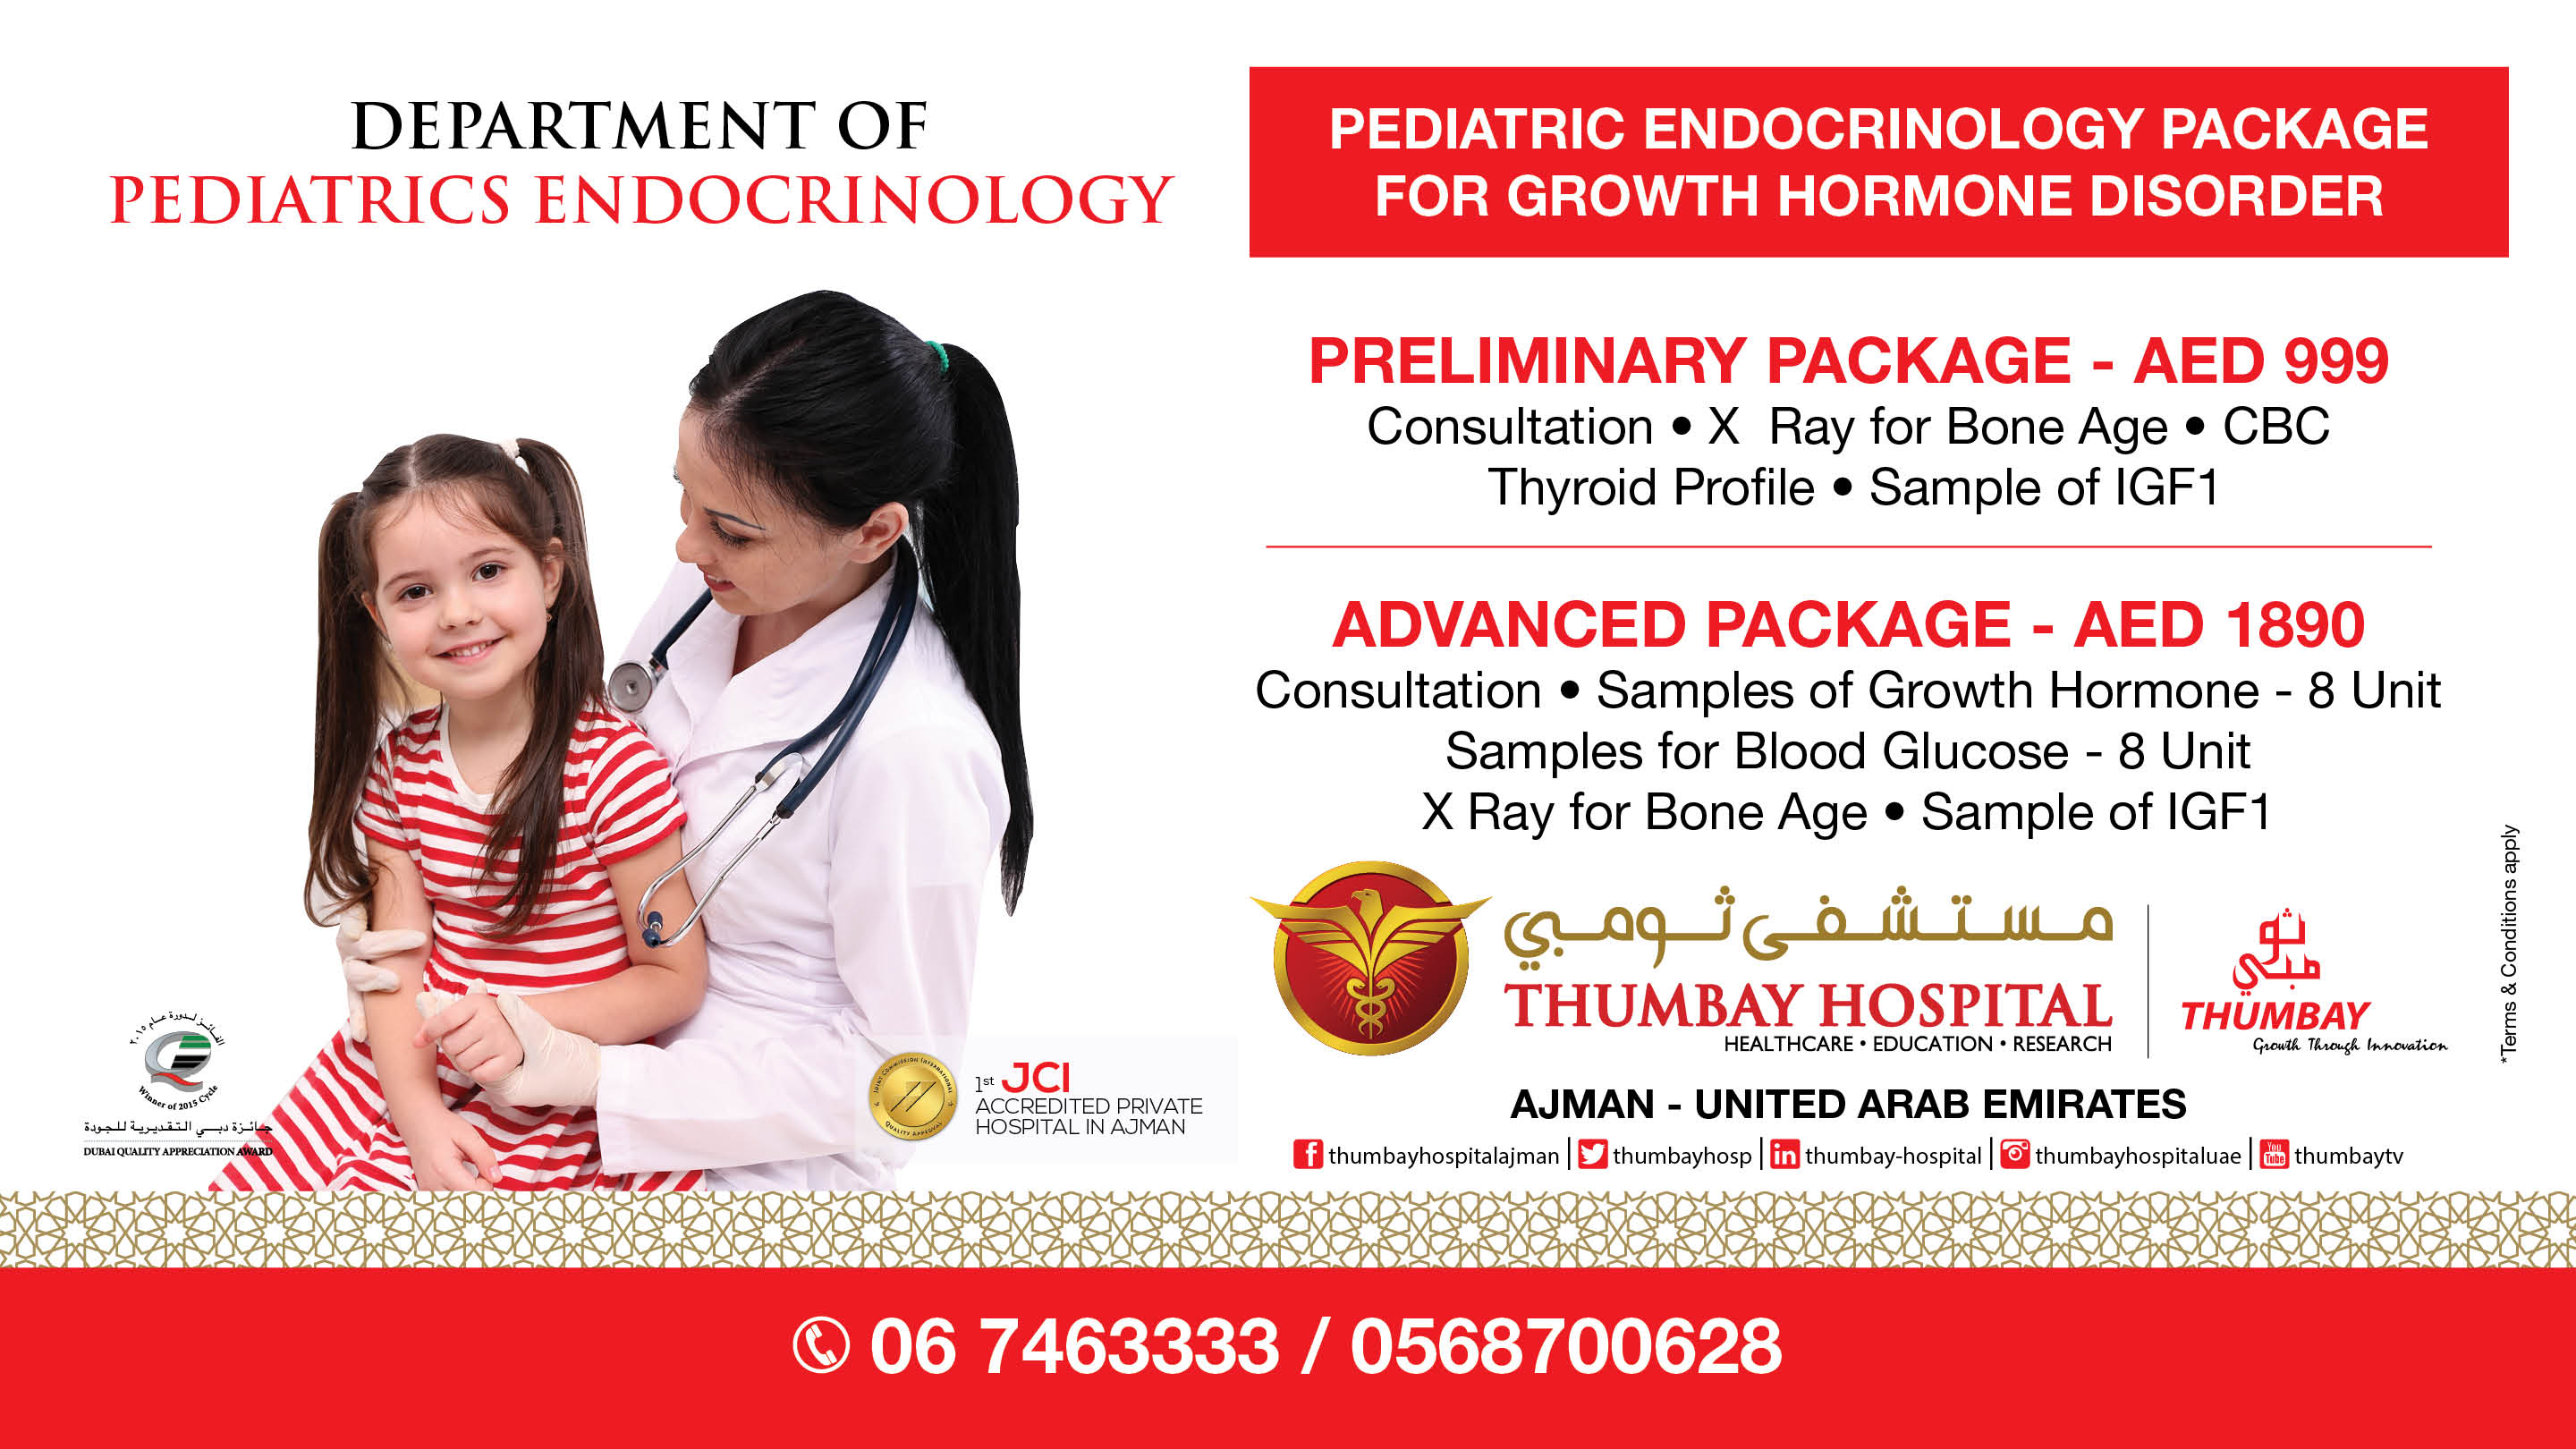 Pediatric Endocrinology Package For Growth Hormone Disorder